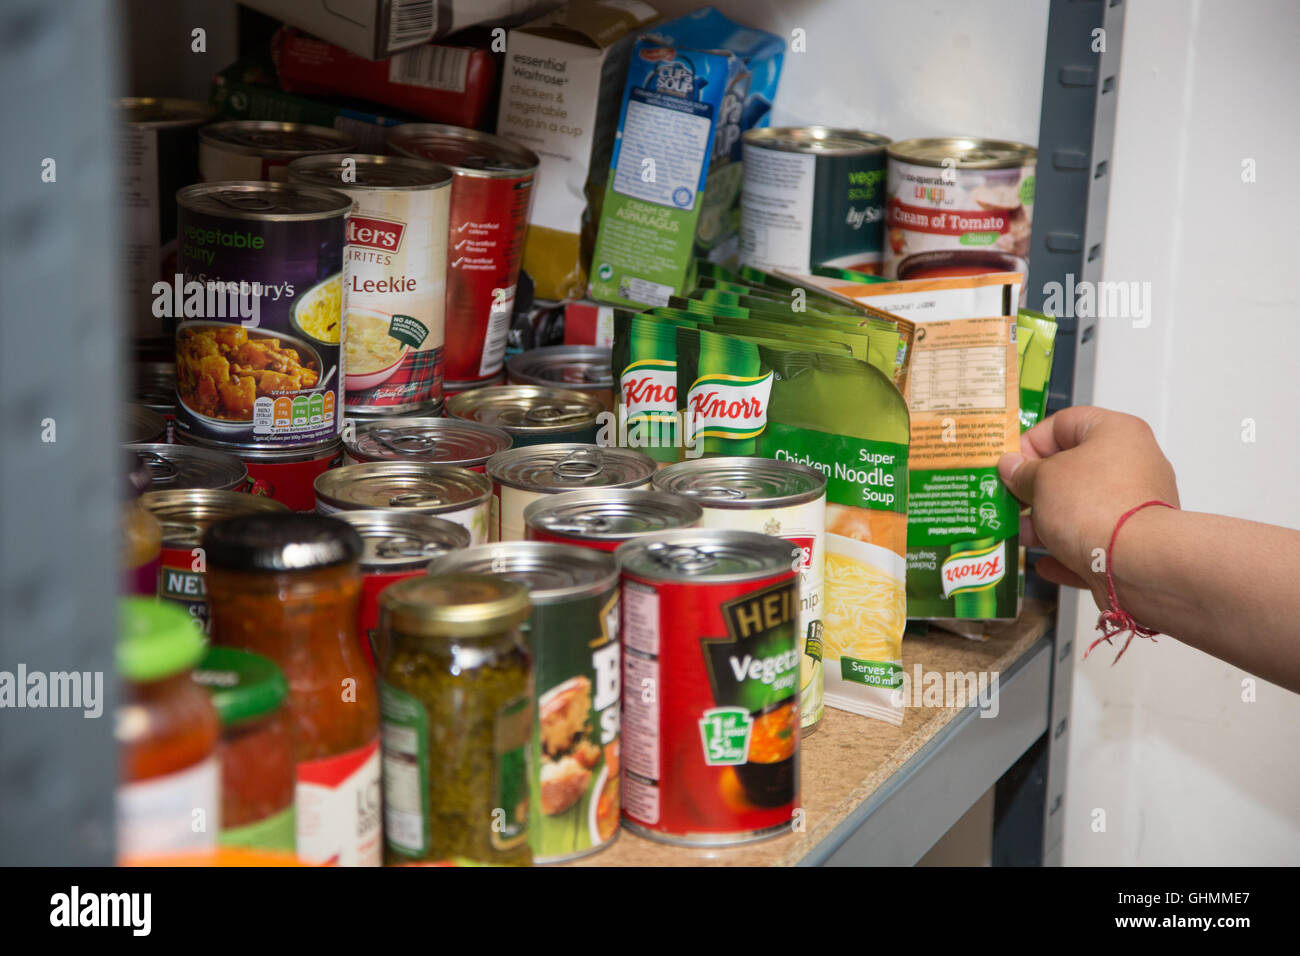 A hand reaches in to collect or stock a shelf at North Paddington foodbank. - Stock Image